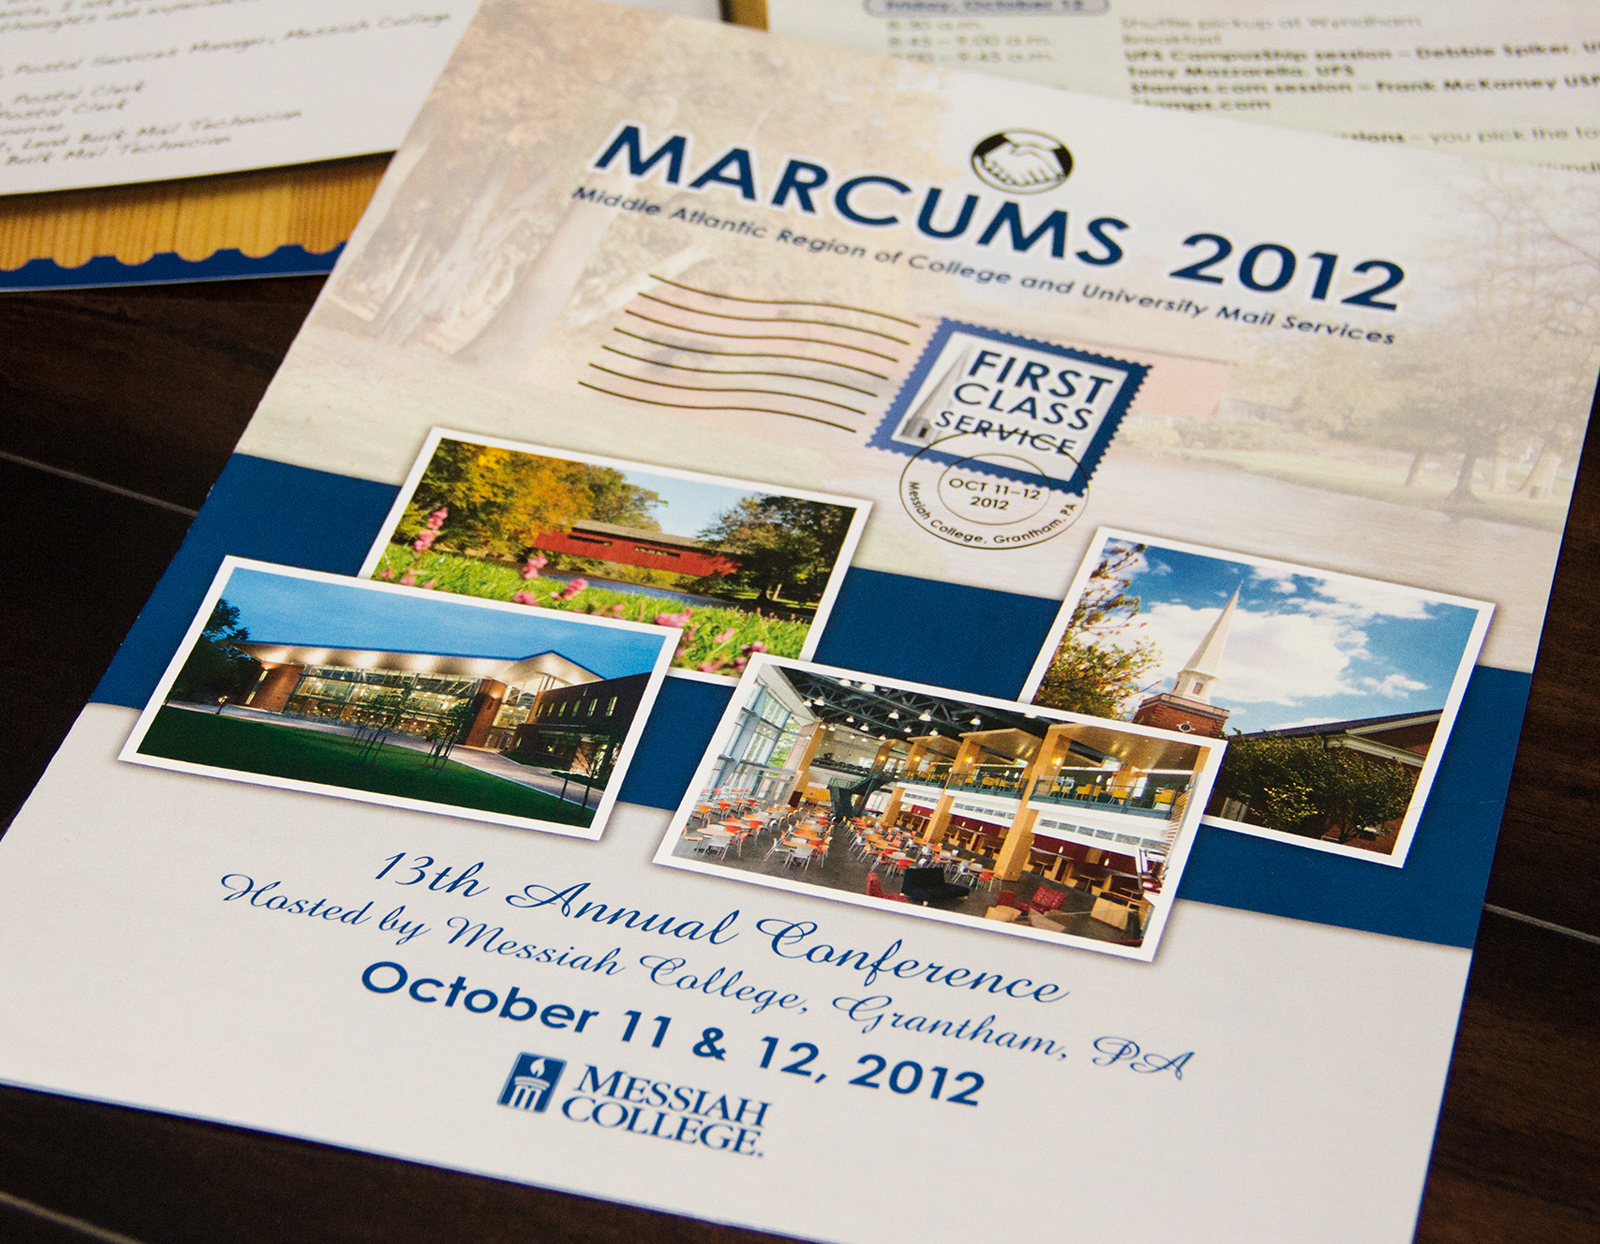 Messiah College MARCUMS 2012 brochure print design